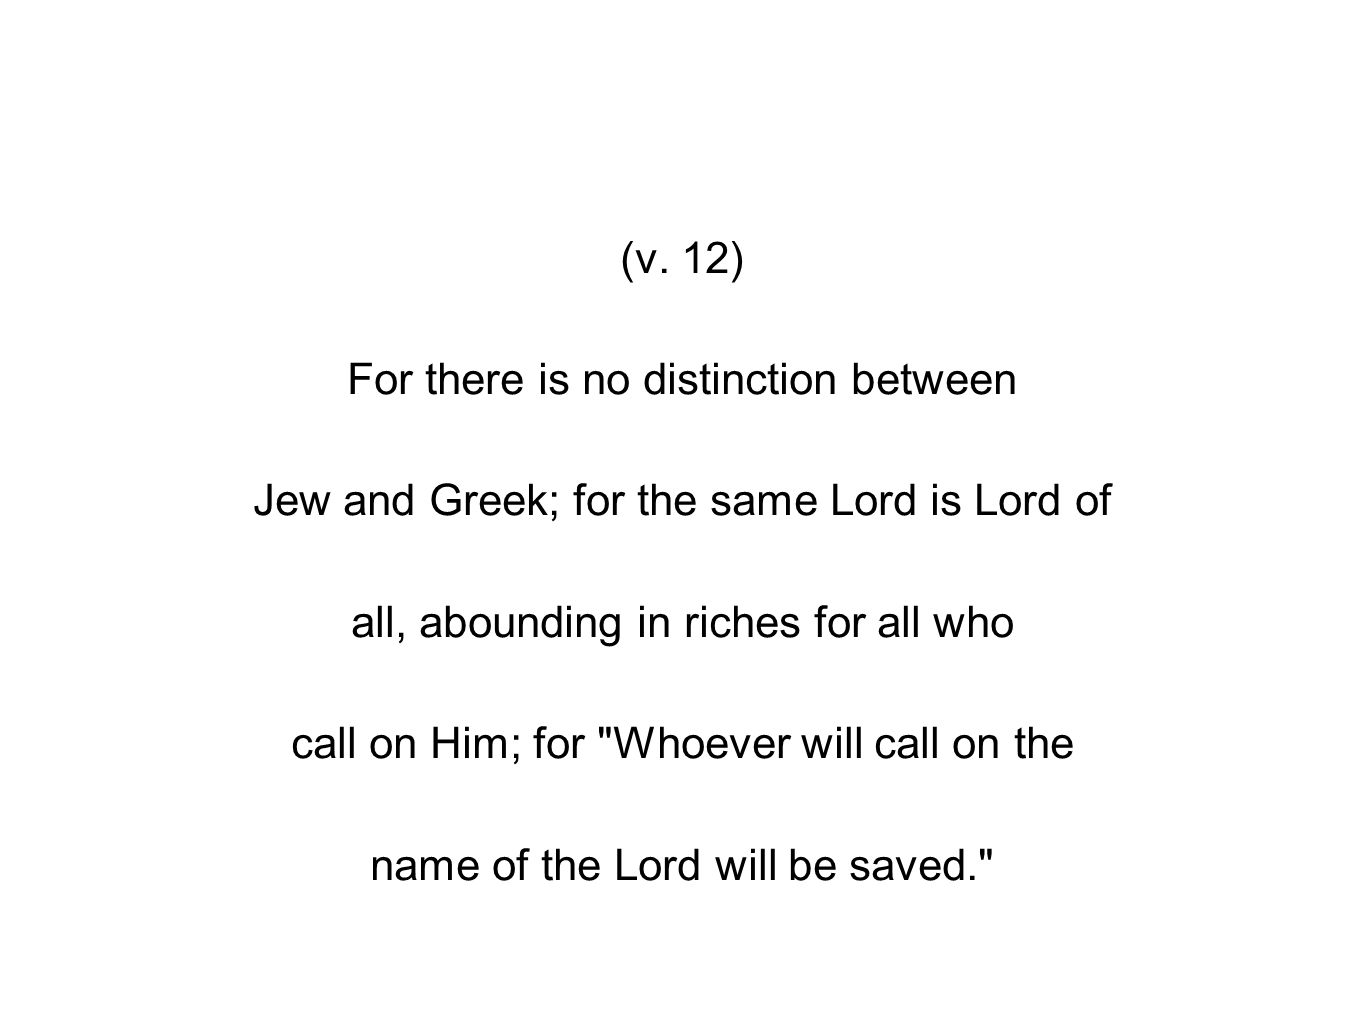 (v. 12) For there is no distinction between Jew and Greek; for the same Lord is Lord of all, abounding in riches for all who call on Him; for